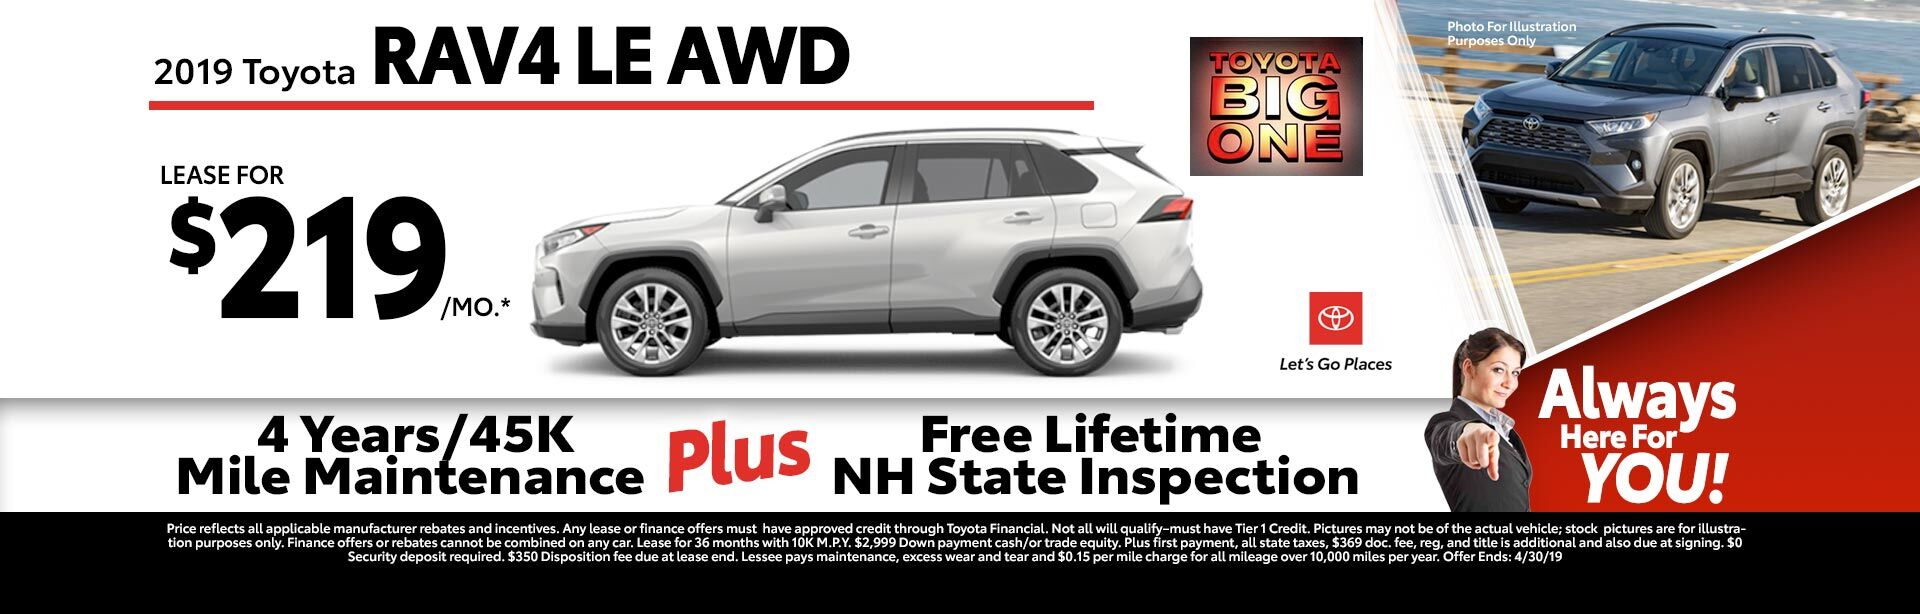 2019 Toyota RAV4 LE AWD at McGee Toyota of Claremont